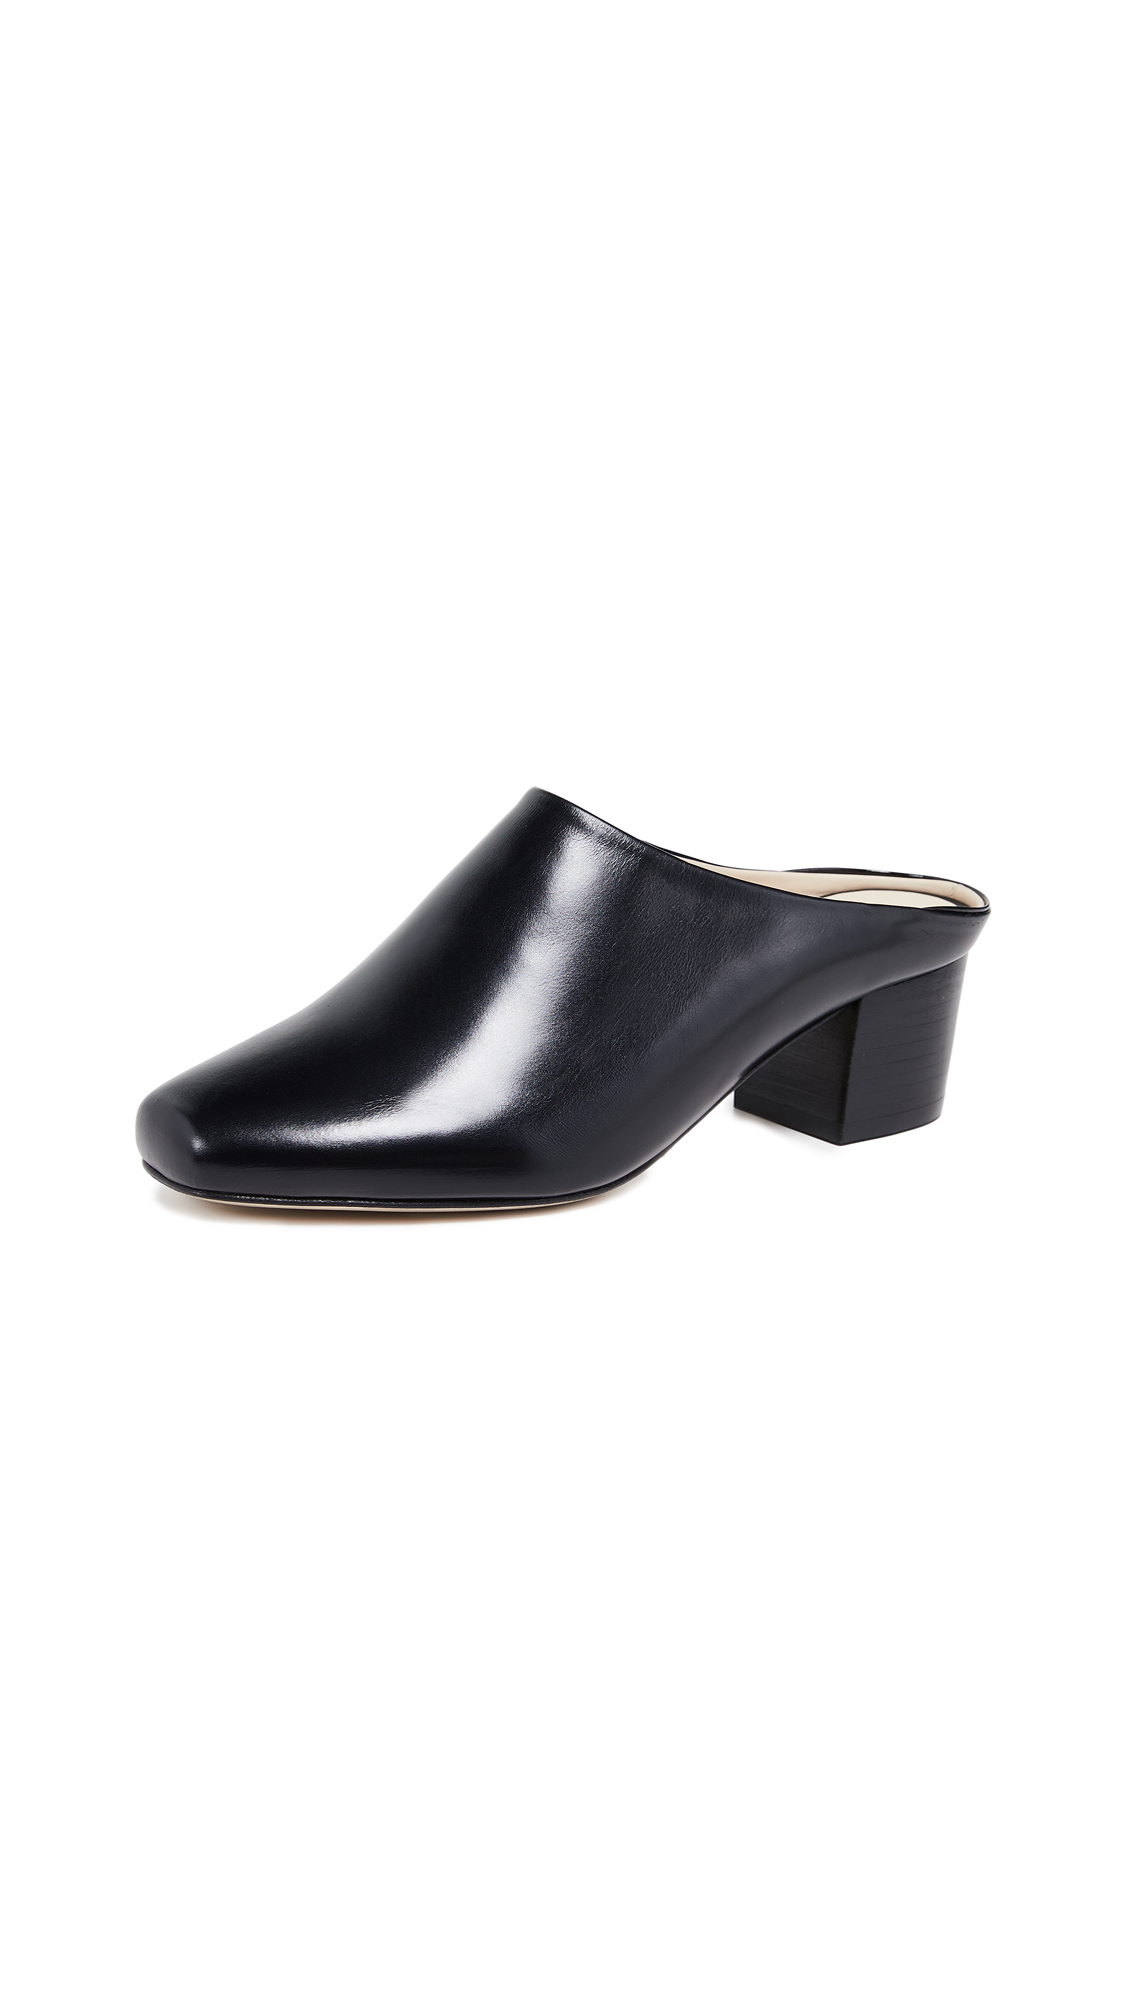 WANT Les Essentiels Alia Mules - Black/Black